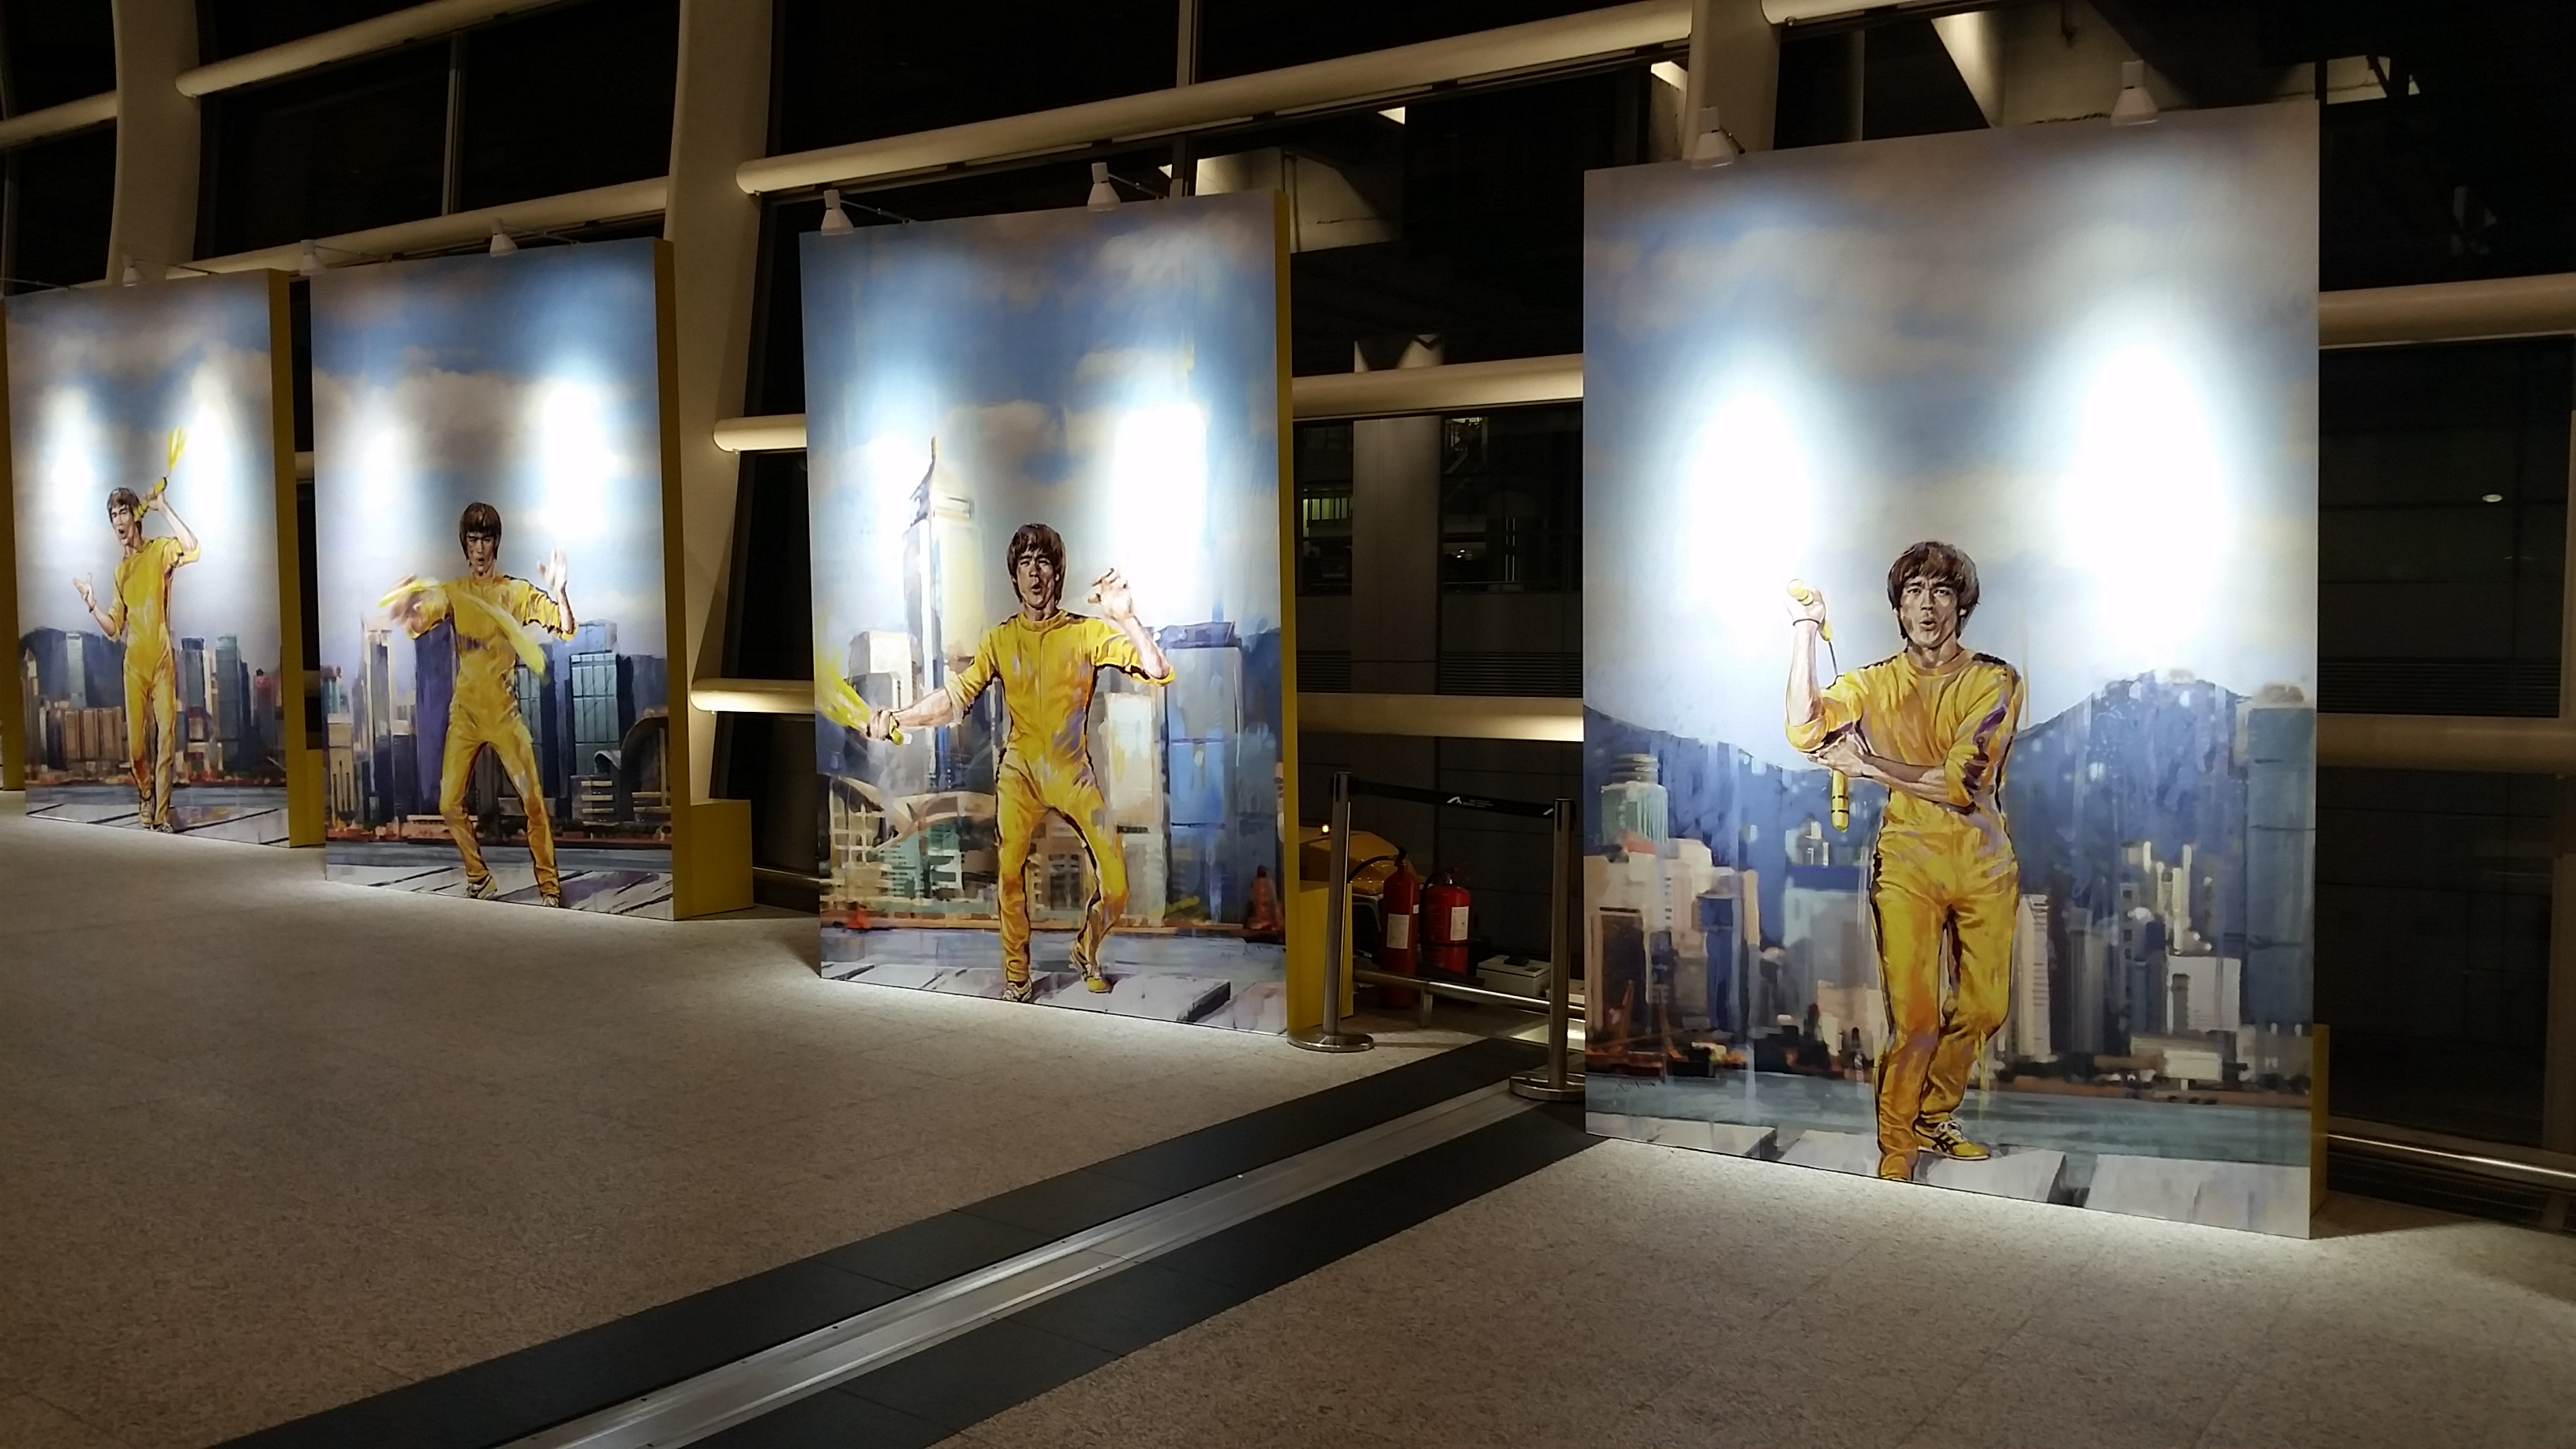 At Hongkong airport one is welcomed by THE Chinese icon: Bruce Lee